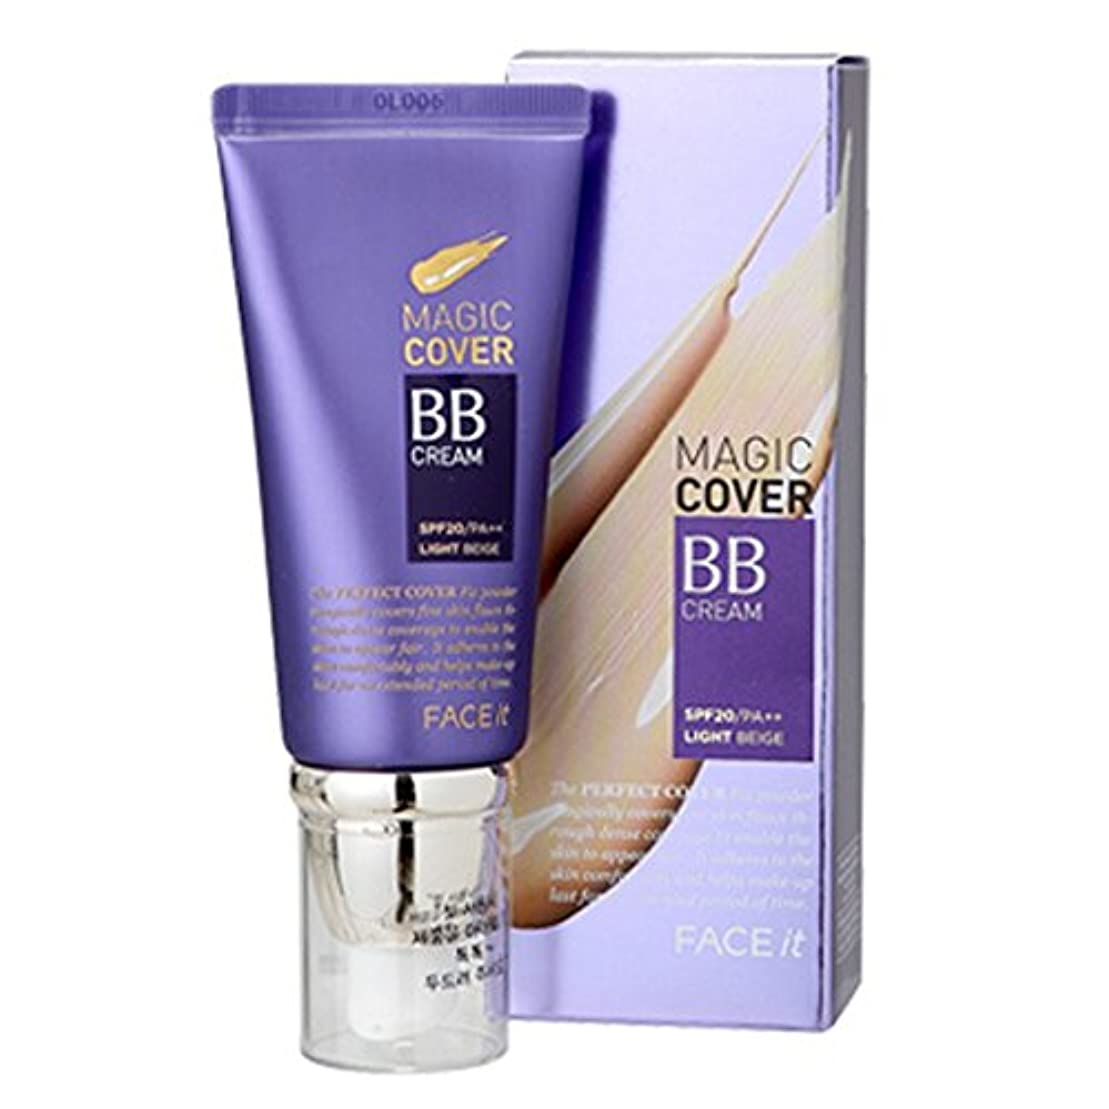 証書流星スペイン語ザフェイスショップ The Face Shop Face It Magic Cover BB Cream 45ml (02 Natural Beige)